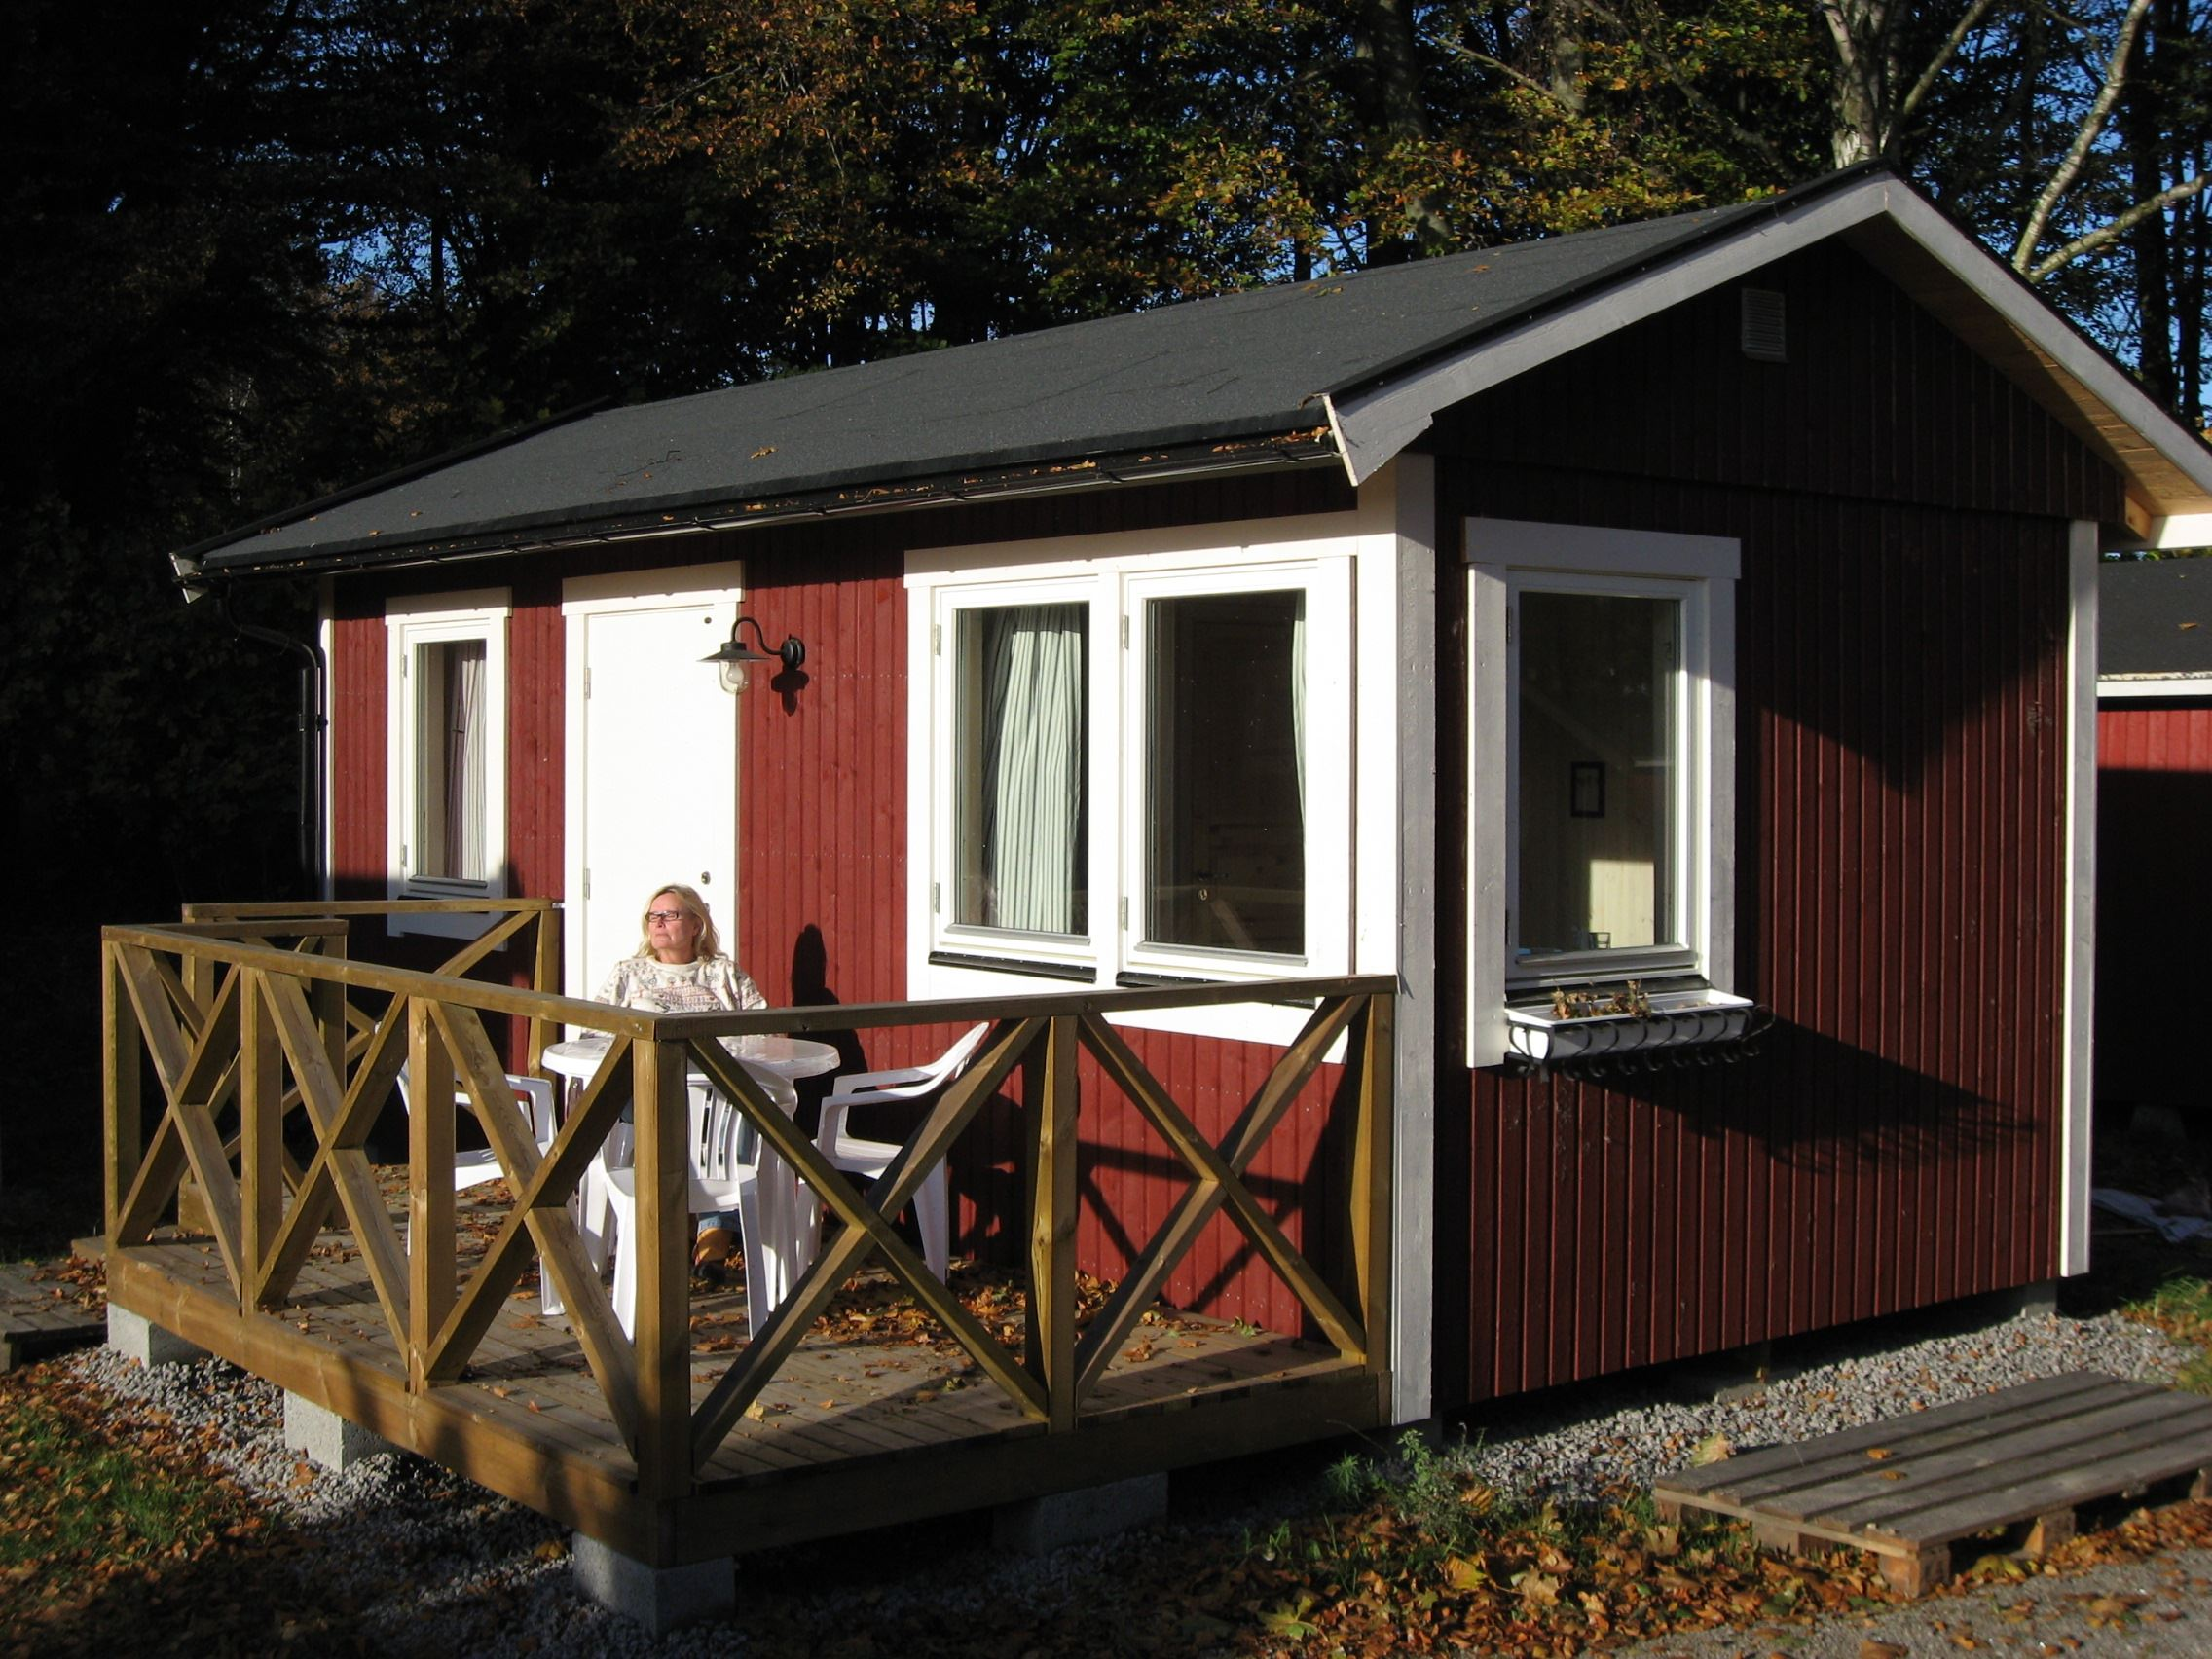 Tredenborgs Camping - Cabins